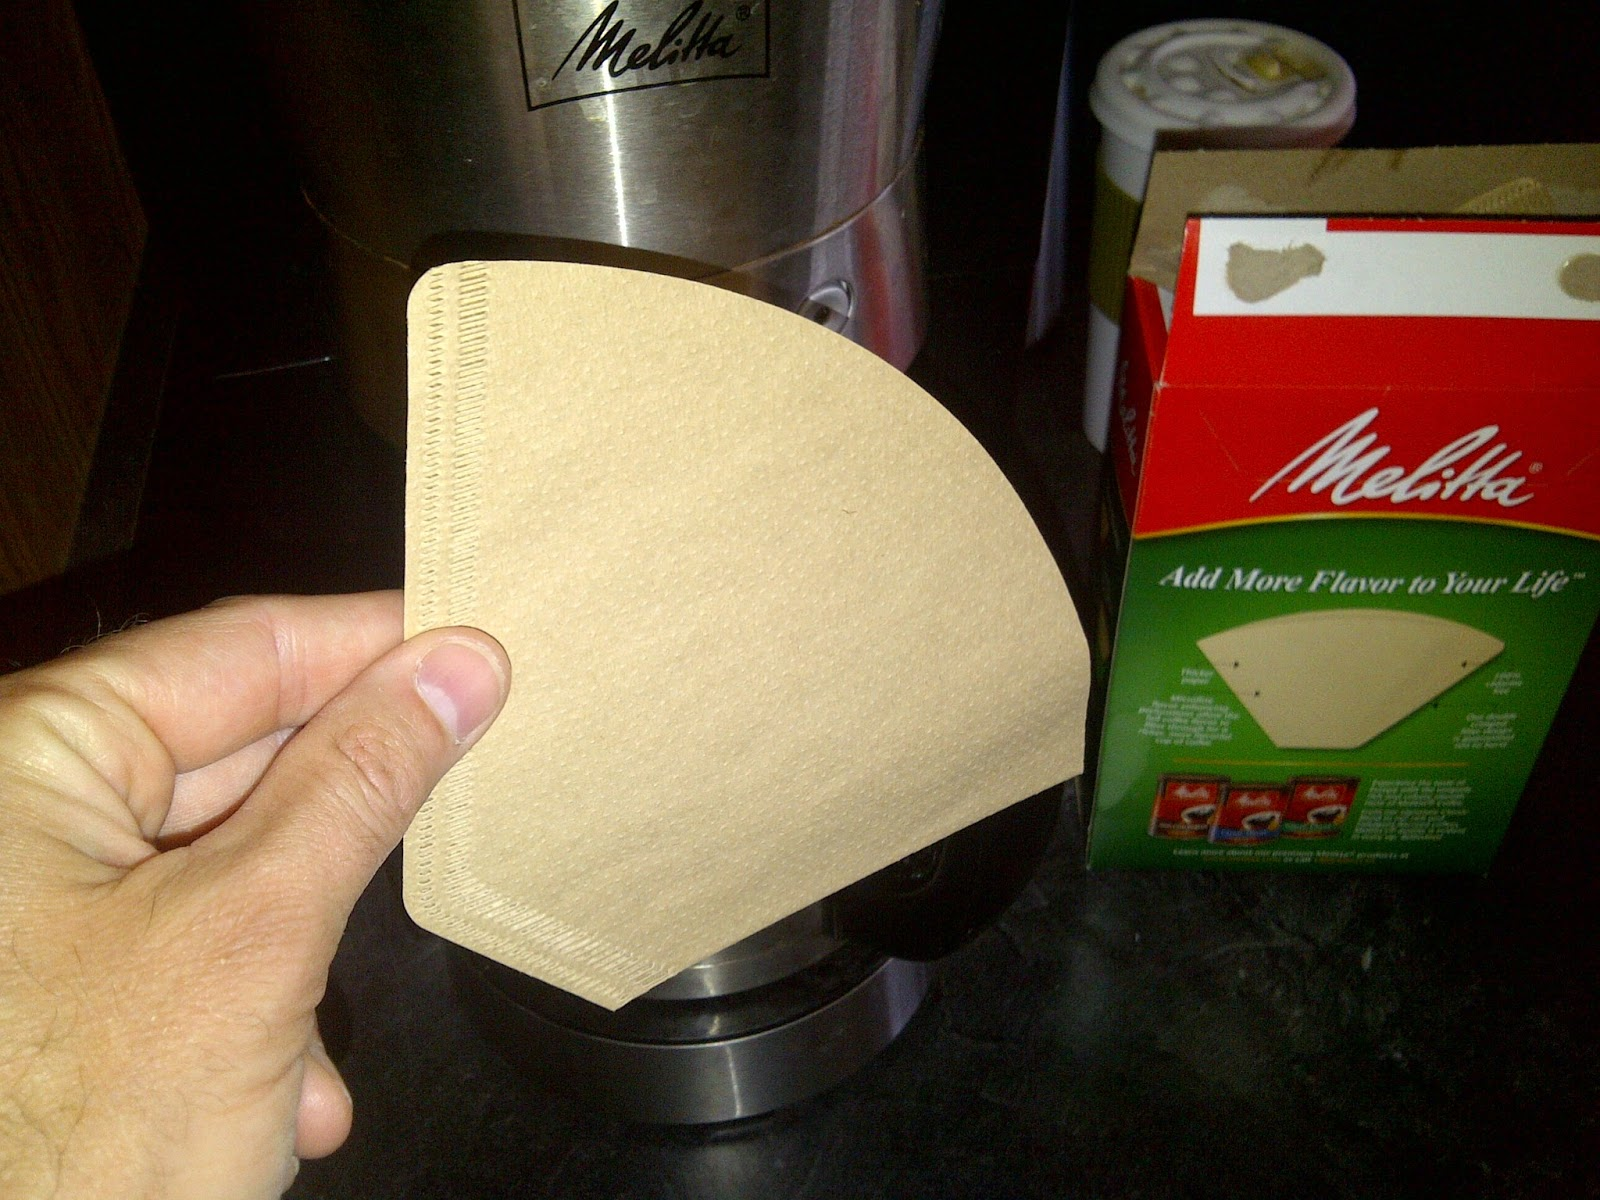 Best Coffee Maker With Paper Filter : Coffee Filter Types: Cone vs Basket Coffee Filters Coffee Maker Journal